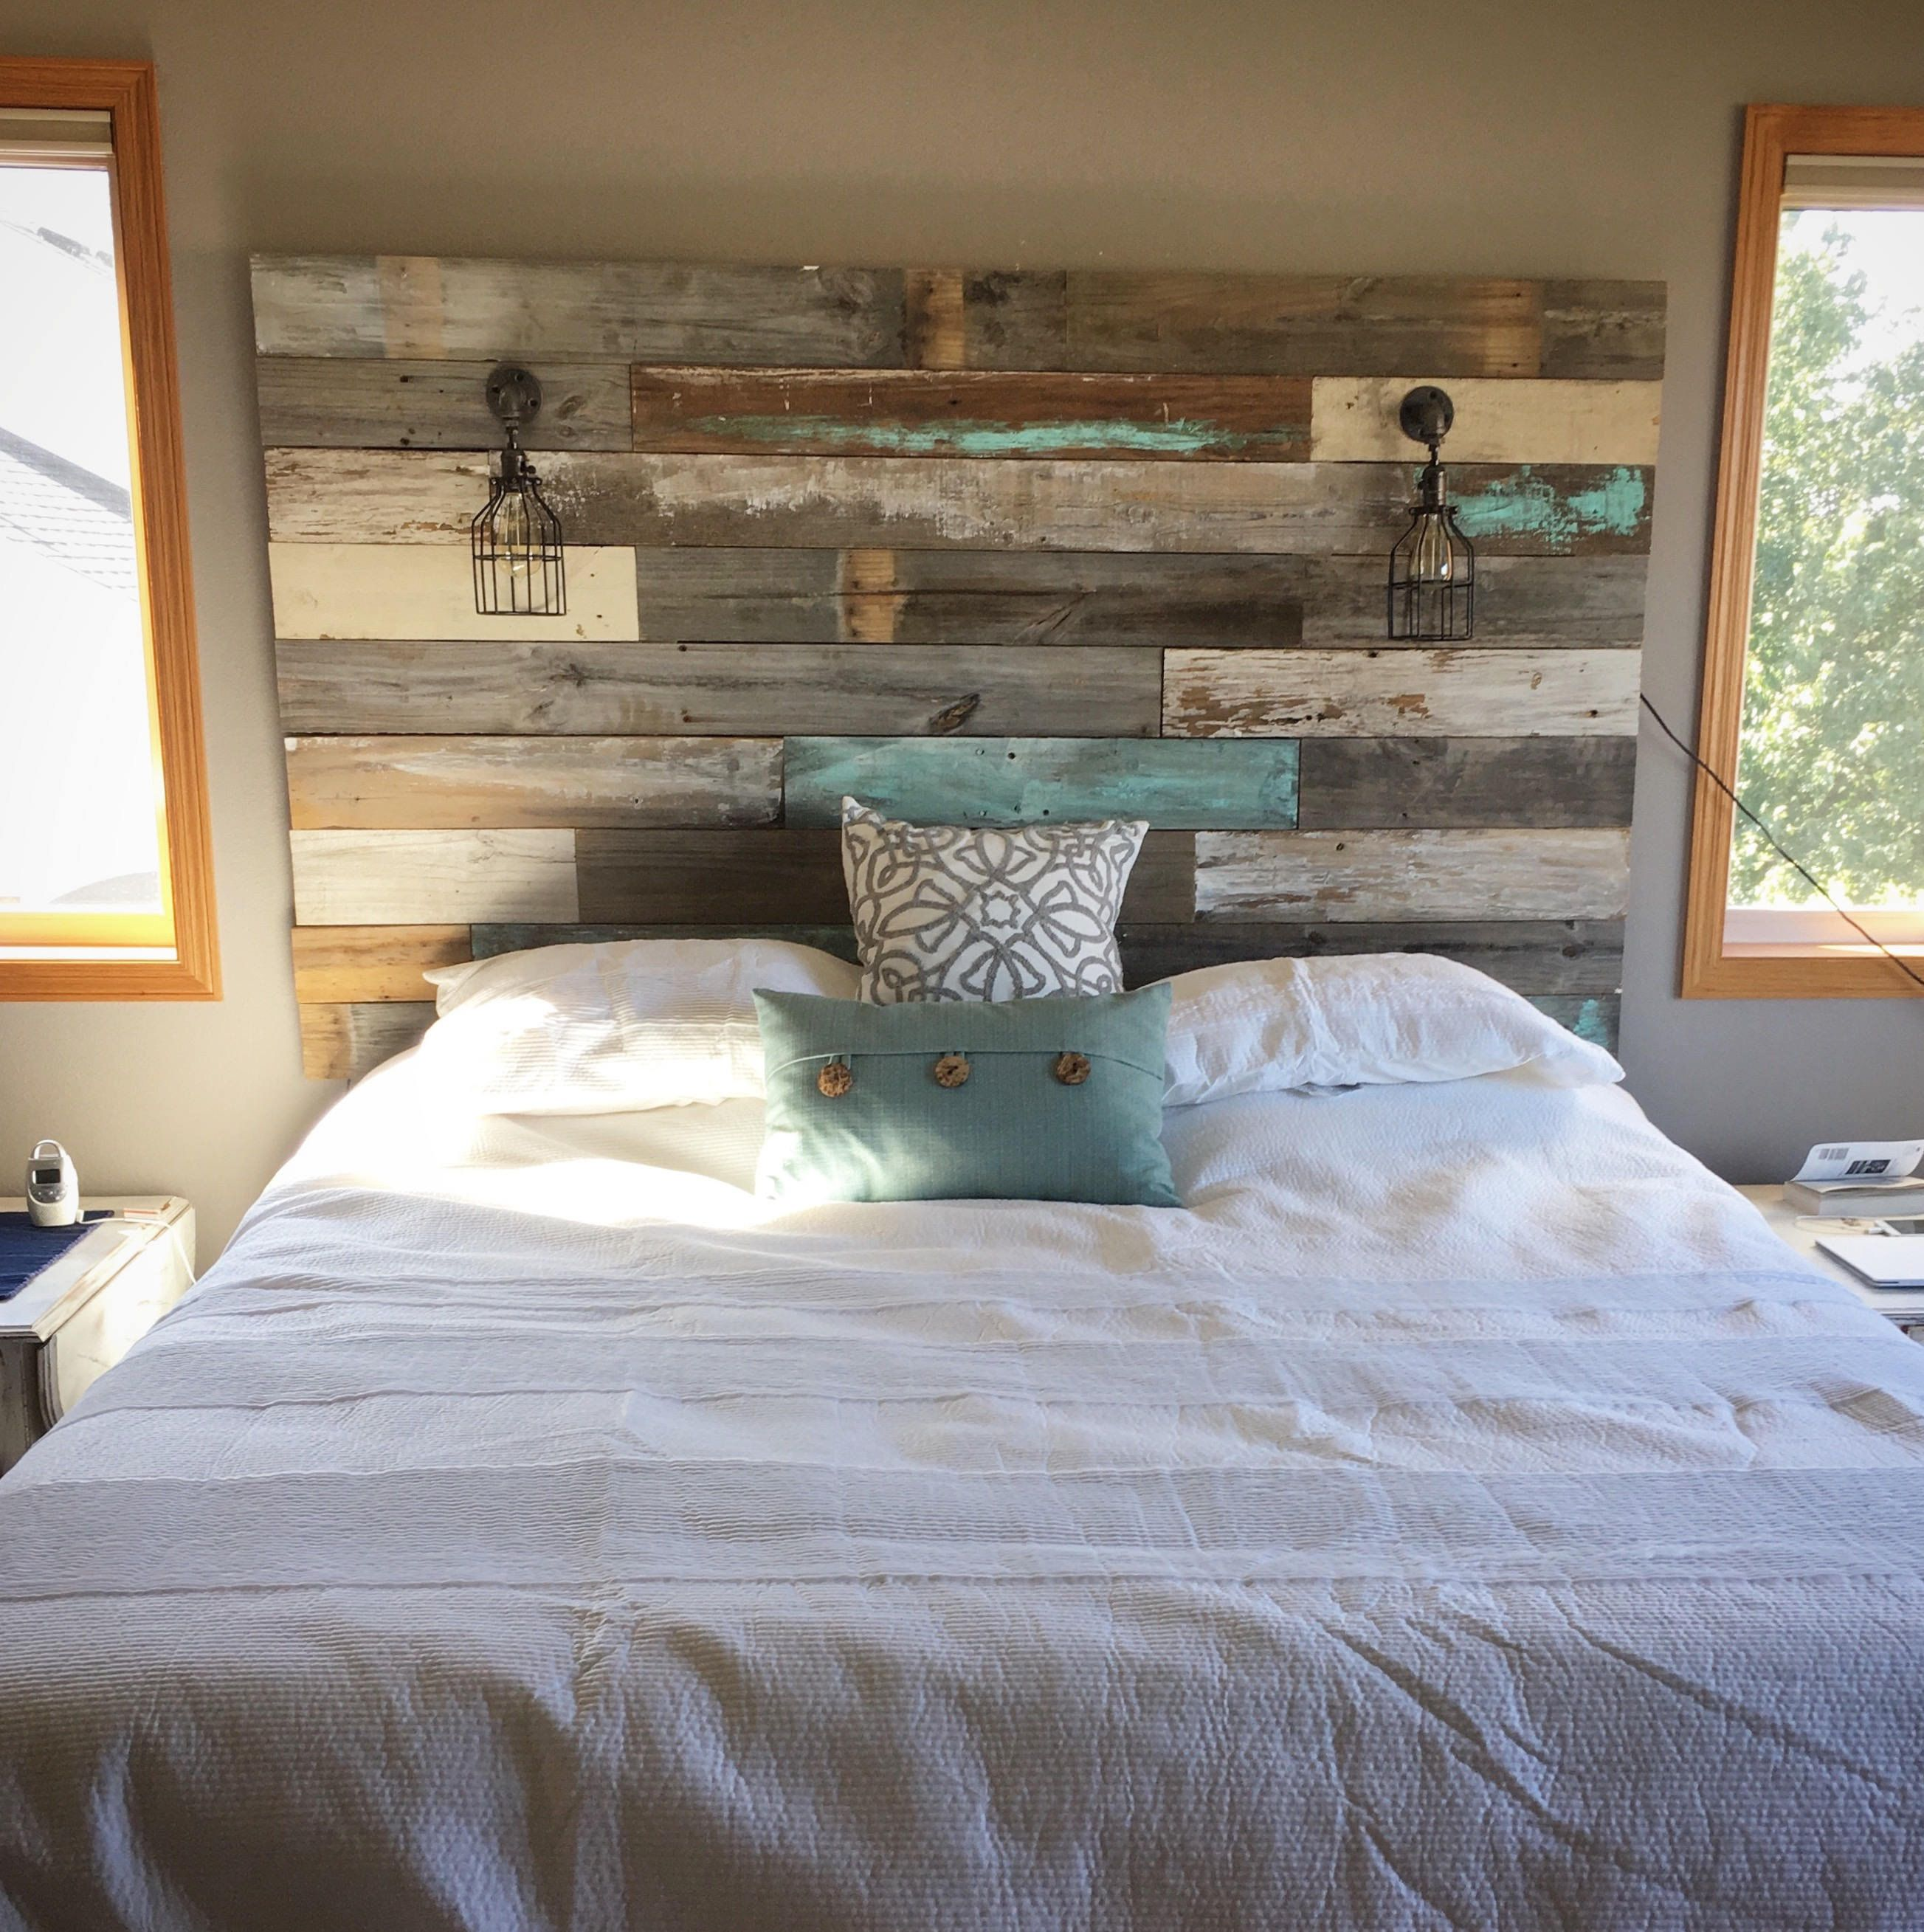 Diy Rustic Bedroom Set Plans Soon: Farmhouse Rustic Chippy Paint Cottage Whitewashed Grey